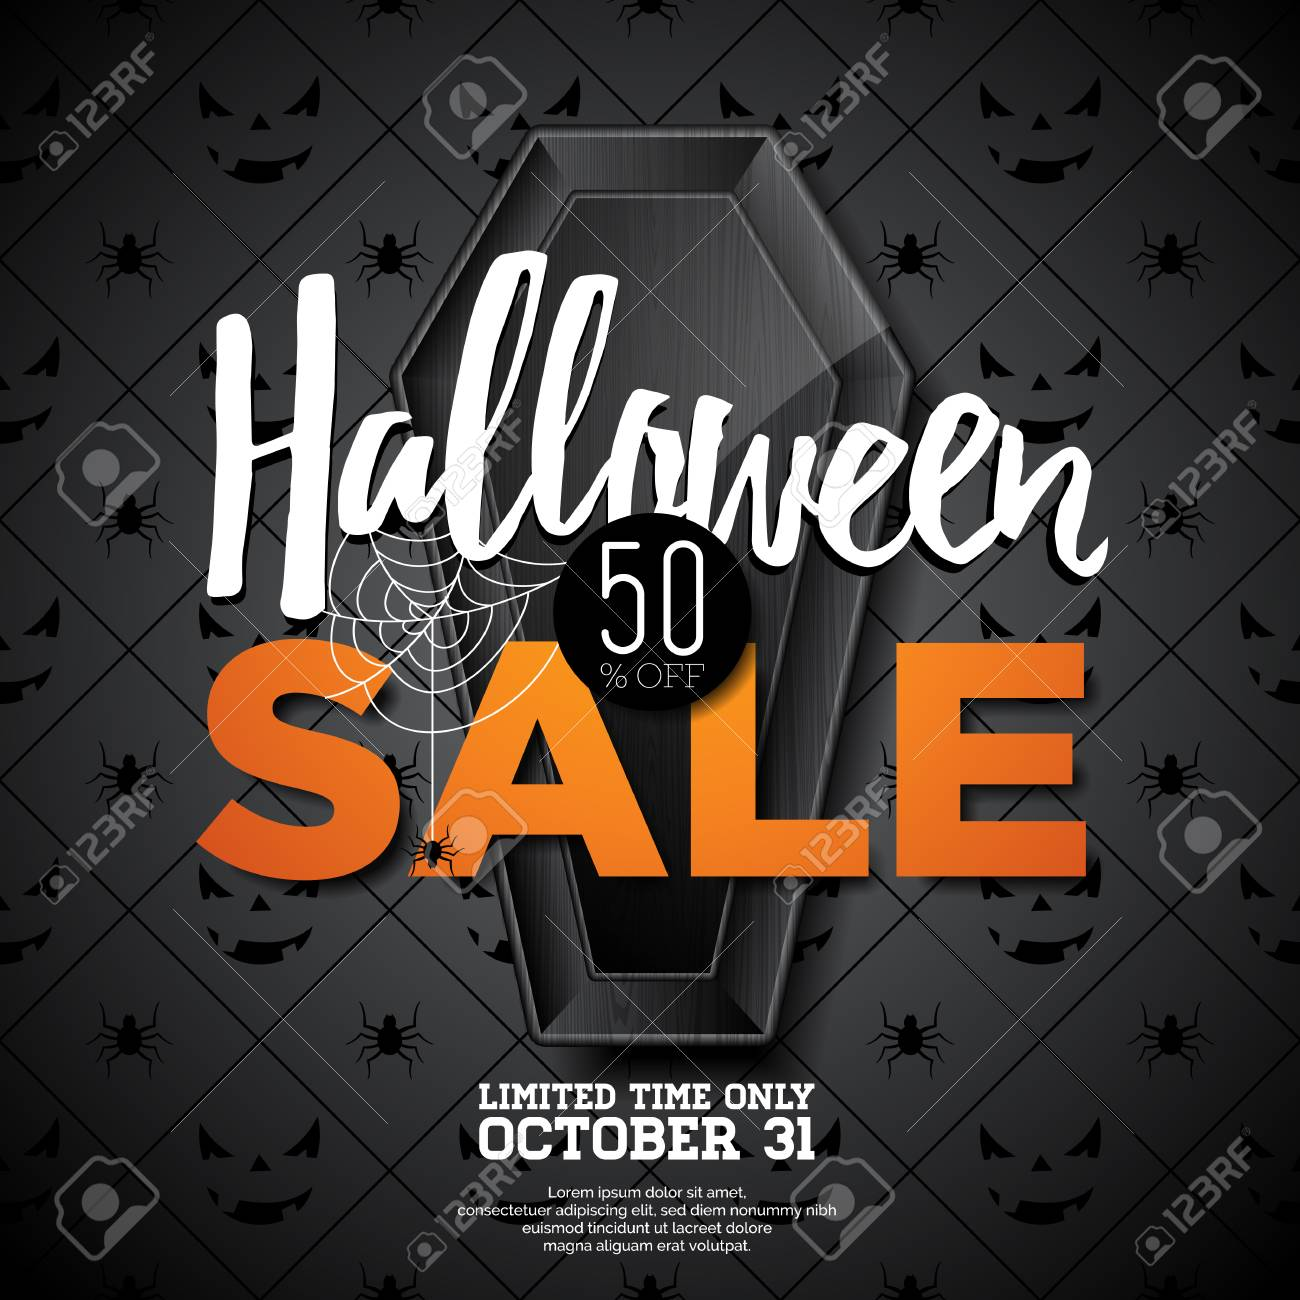 halloween sale vector illustration with coffin and holiday elements on black background design for offer